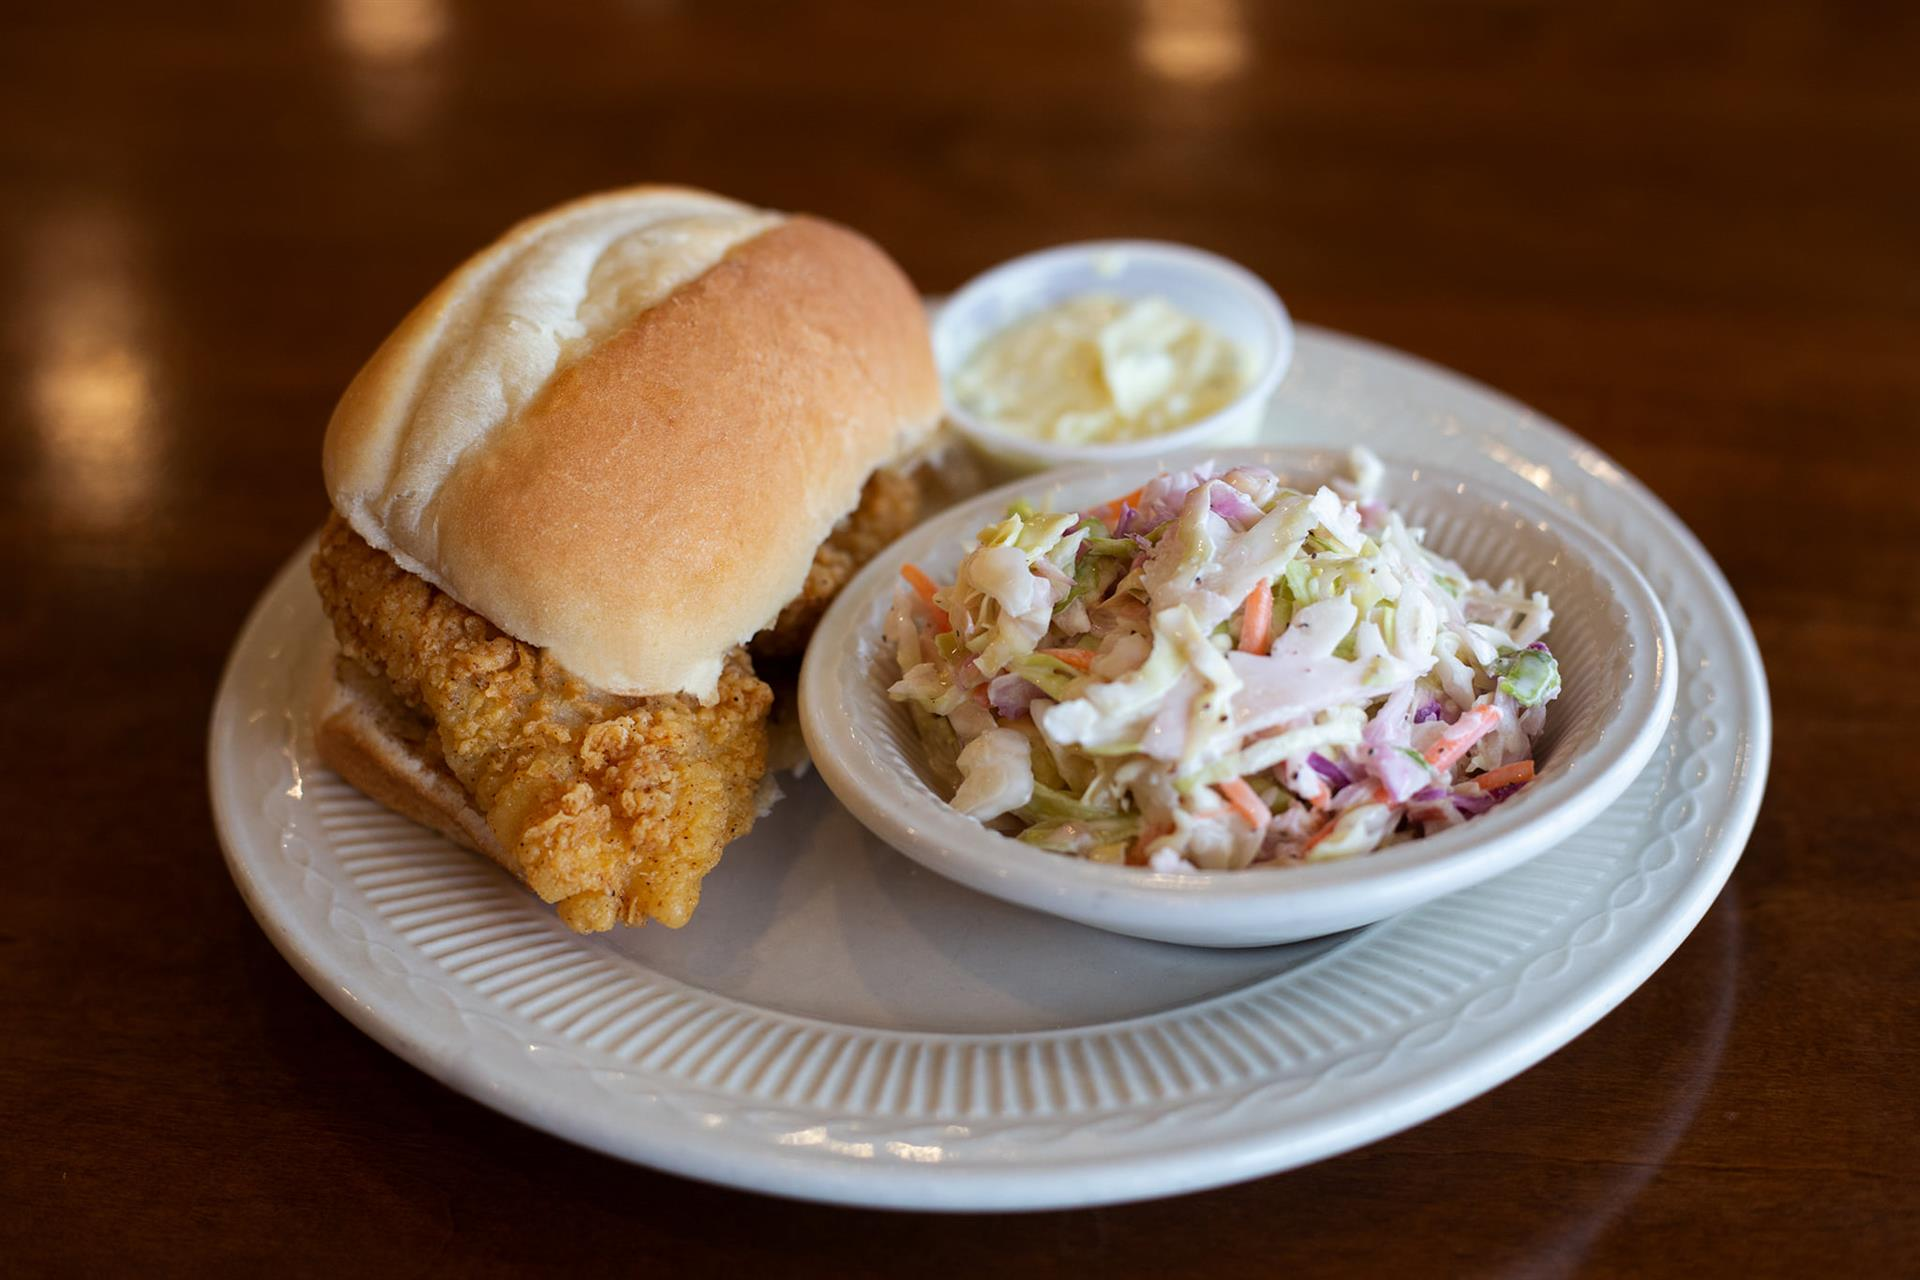 fried chicken sandwich on a bun with a side of coleslaw